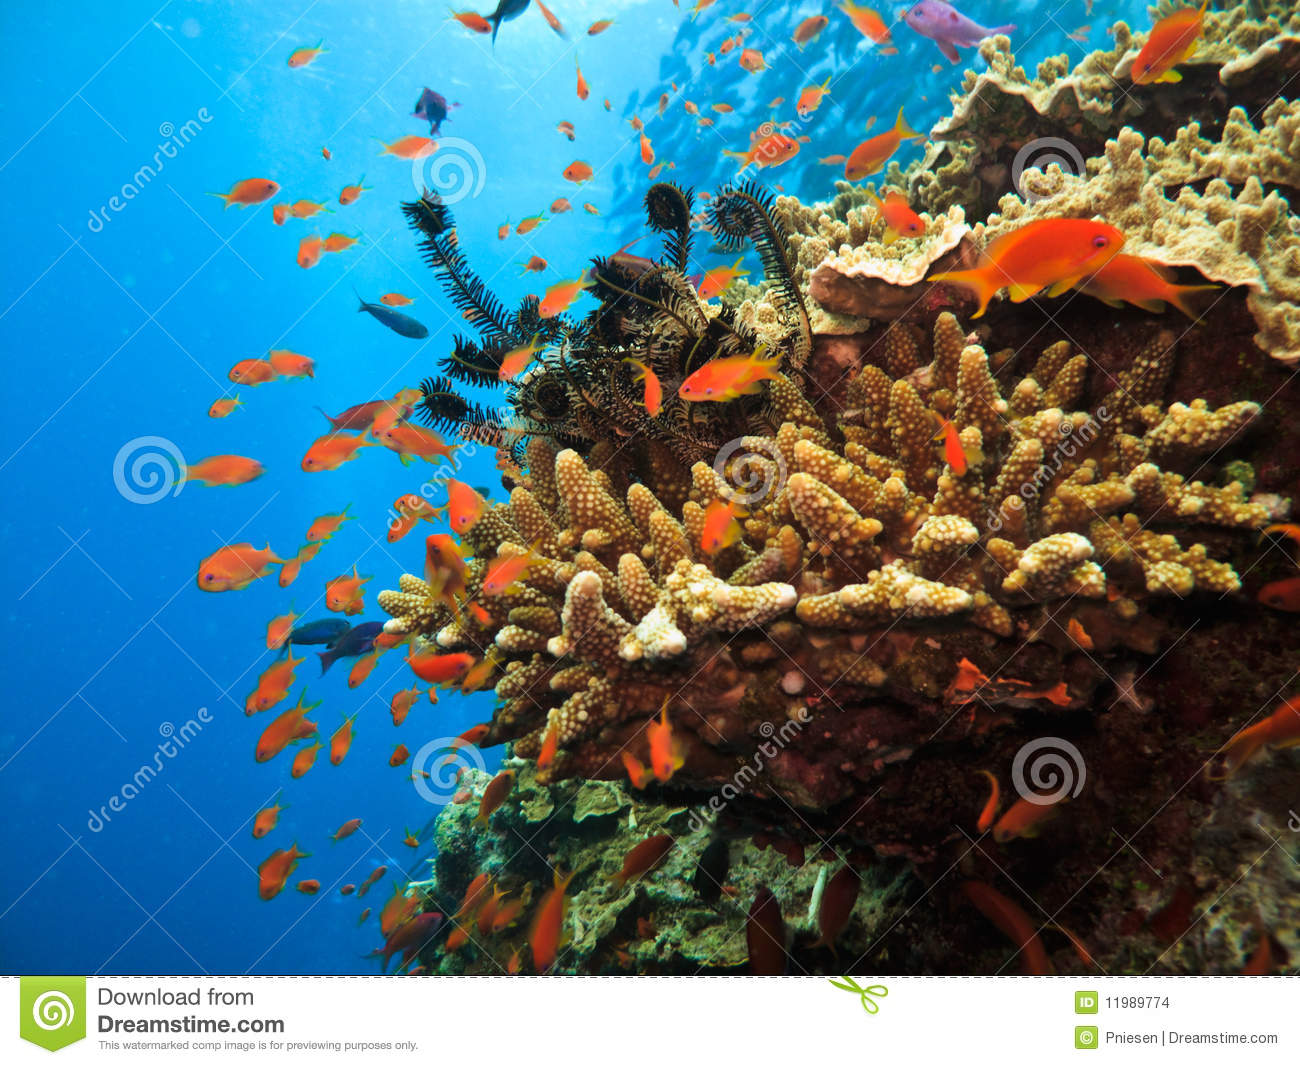 how to catch a clownfish